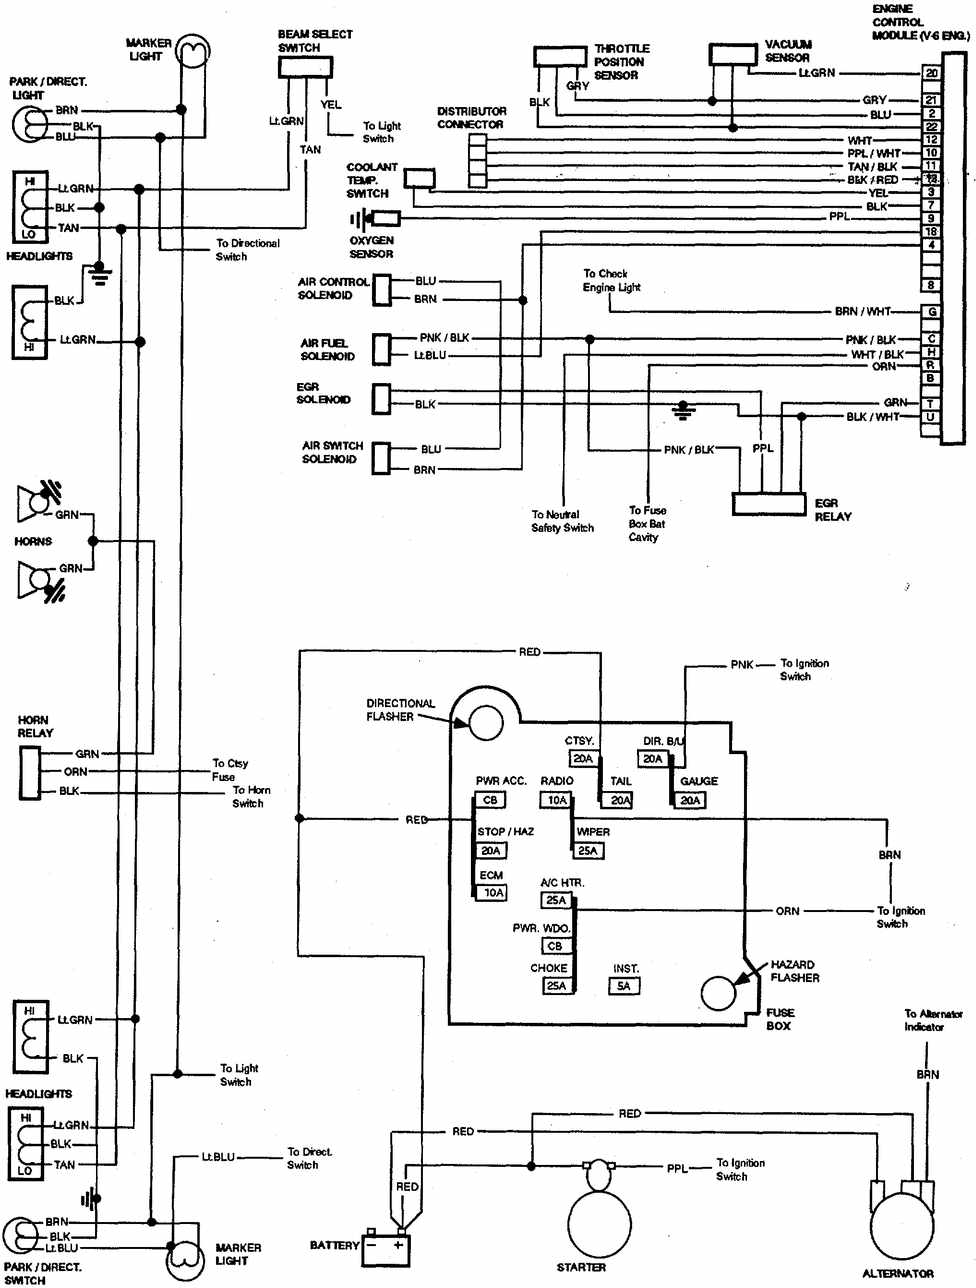 1973 dodge pickup wiring schematics